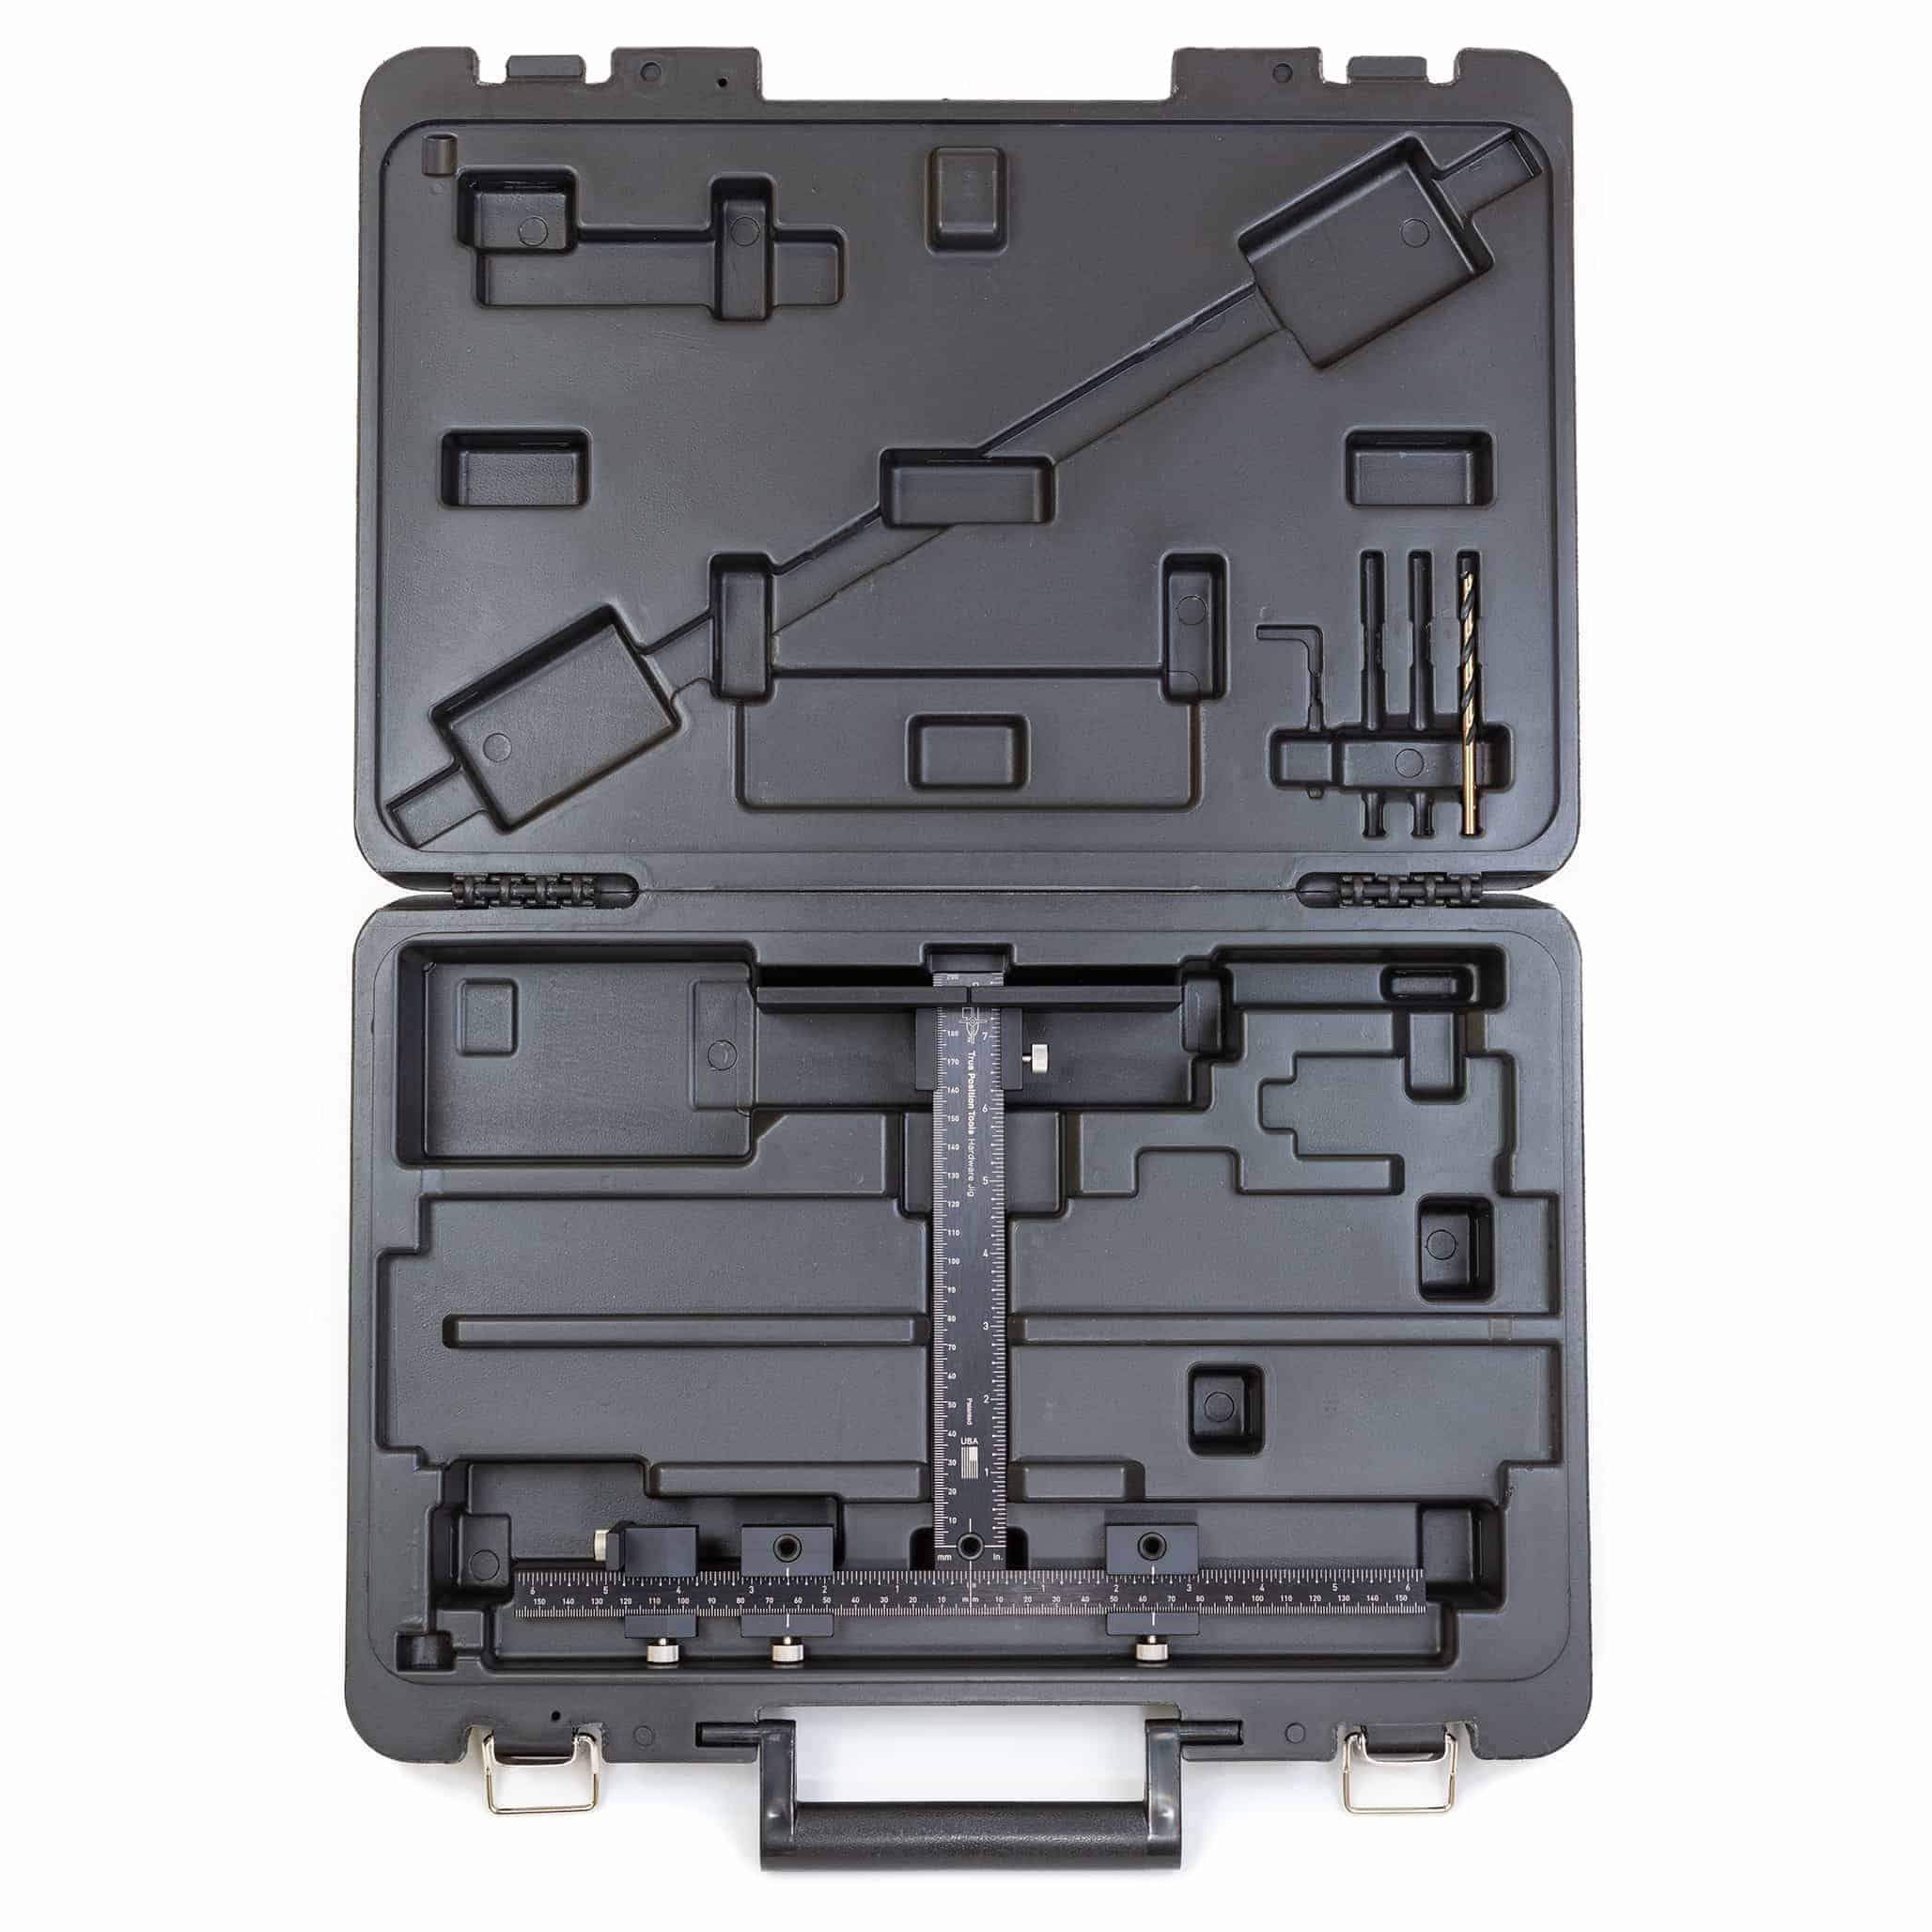 TP-CASECHJ Case for genuine TP-1934 Cabinet Hardware Jig